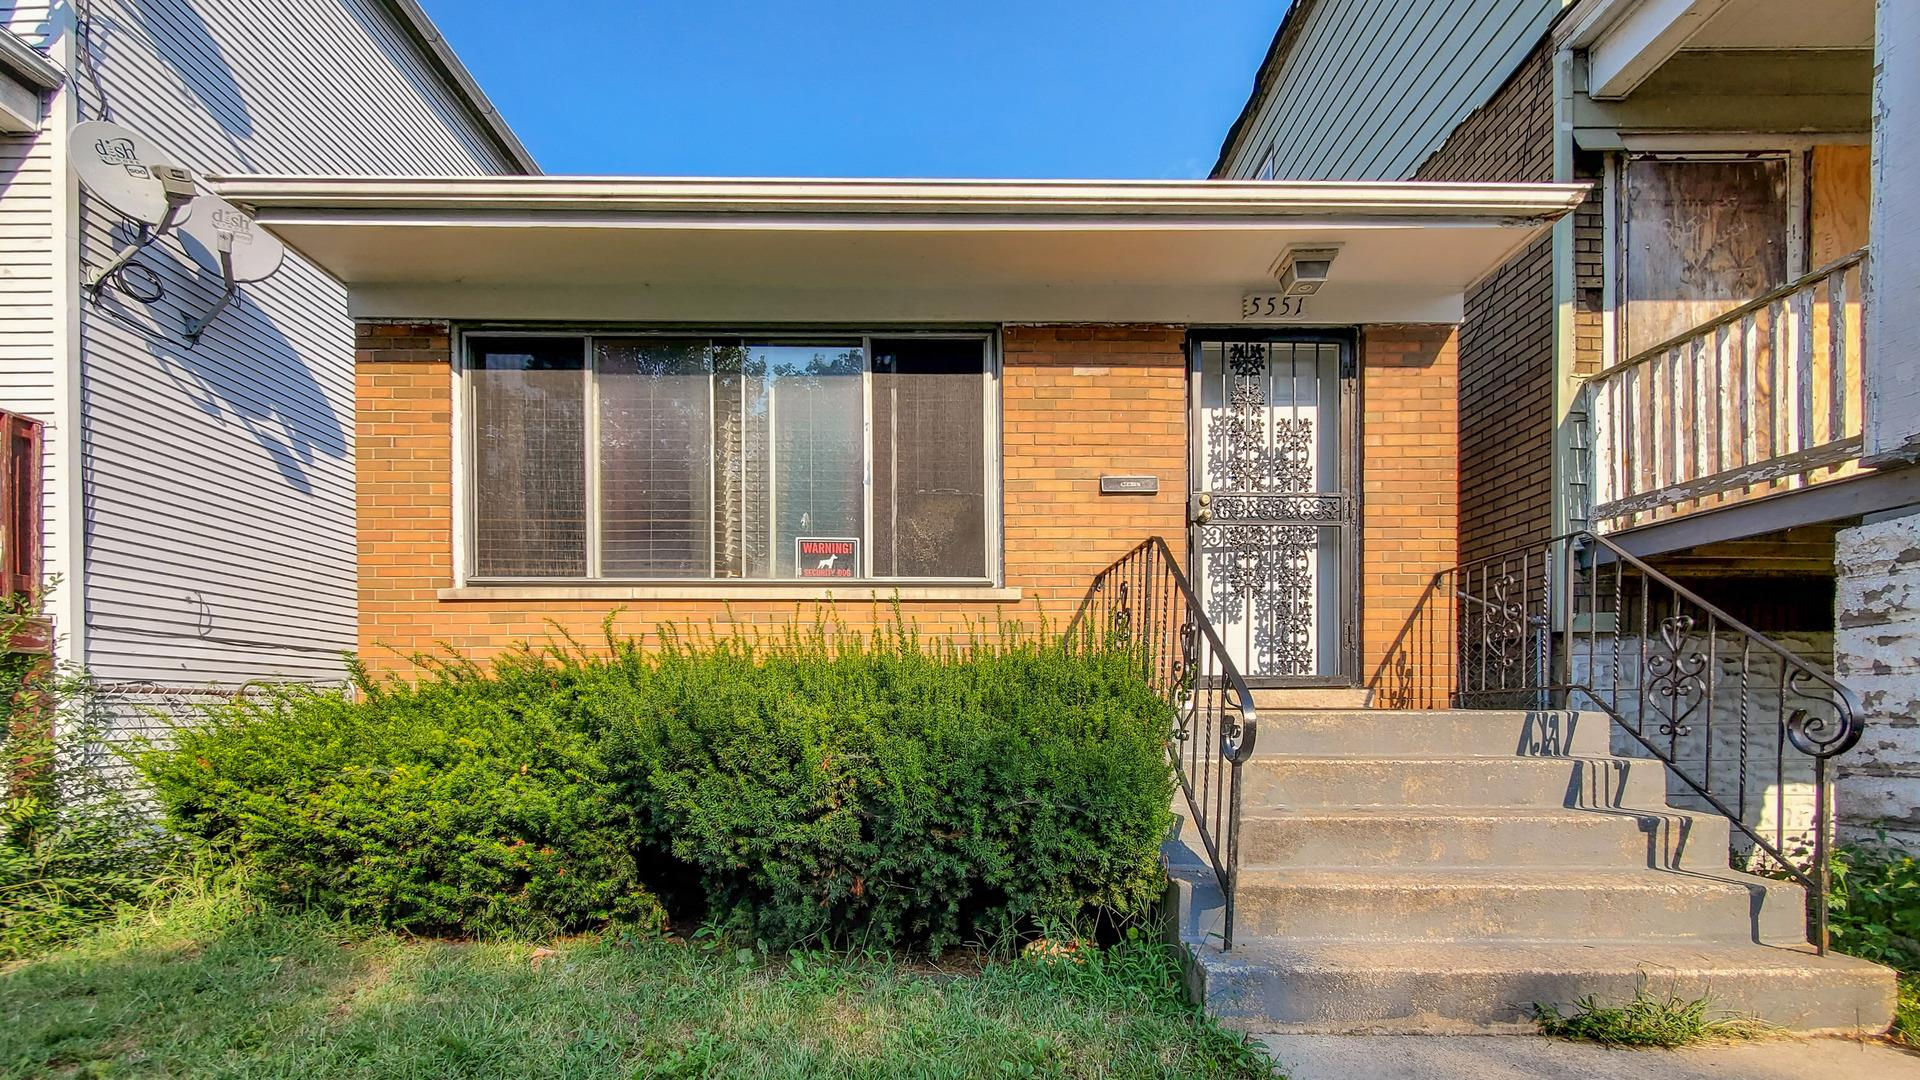 5551 S Shields Avenue, Chicago, IL 60621 - #: 10856361